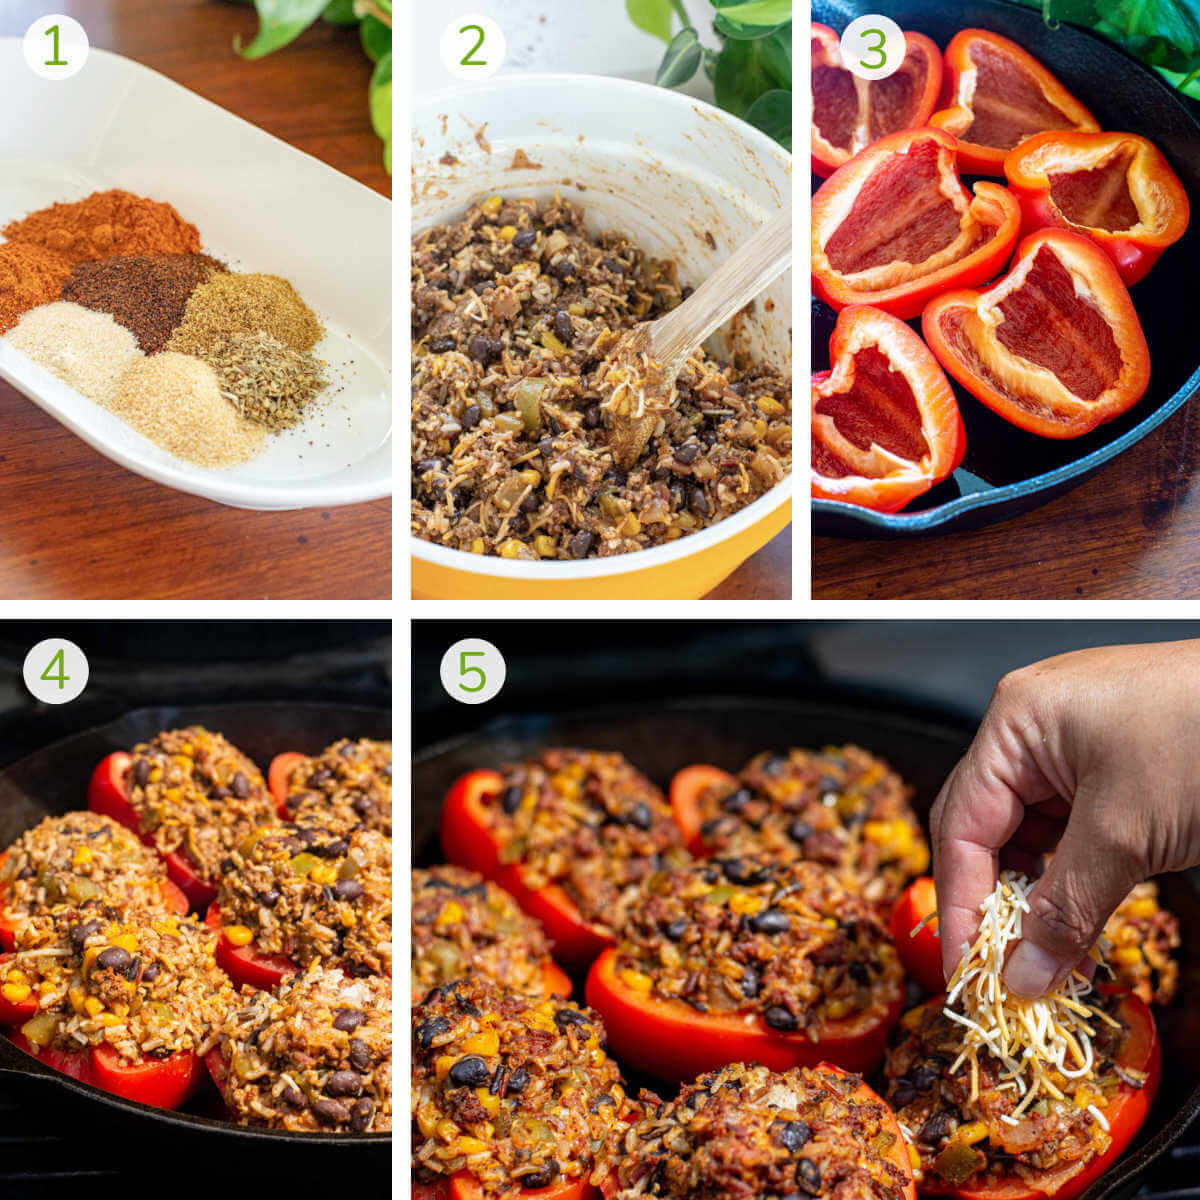 instruction photos showing how to make the seasoning, then the bean filling, and grilling the peppers.